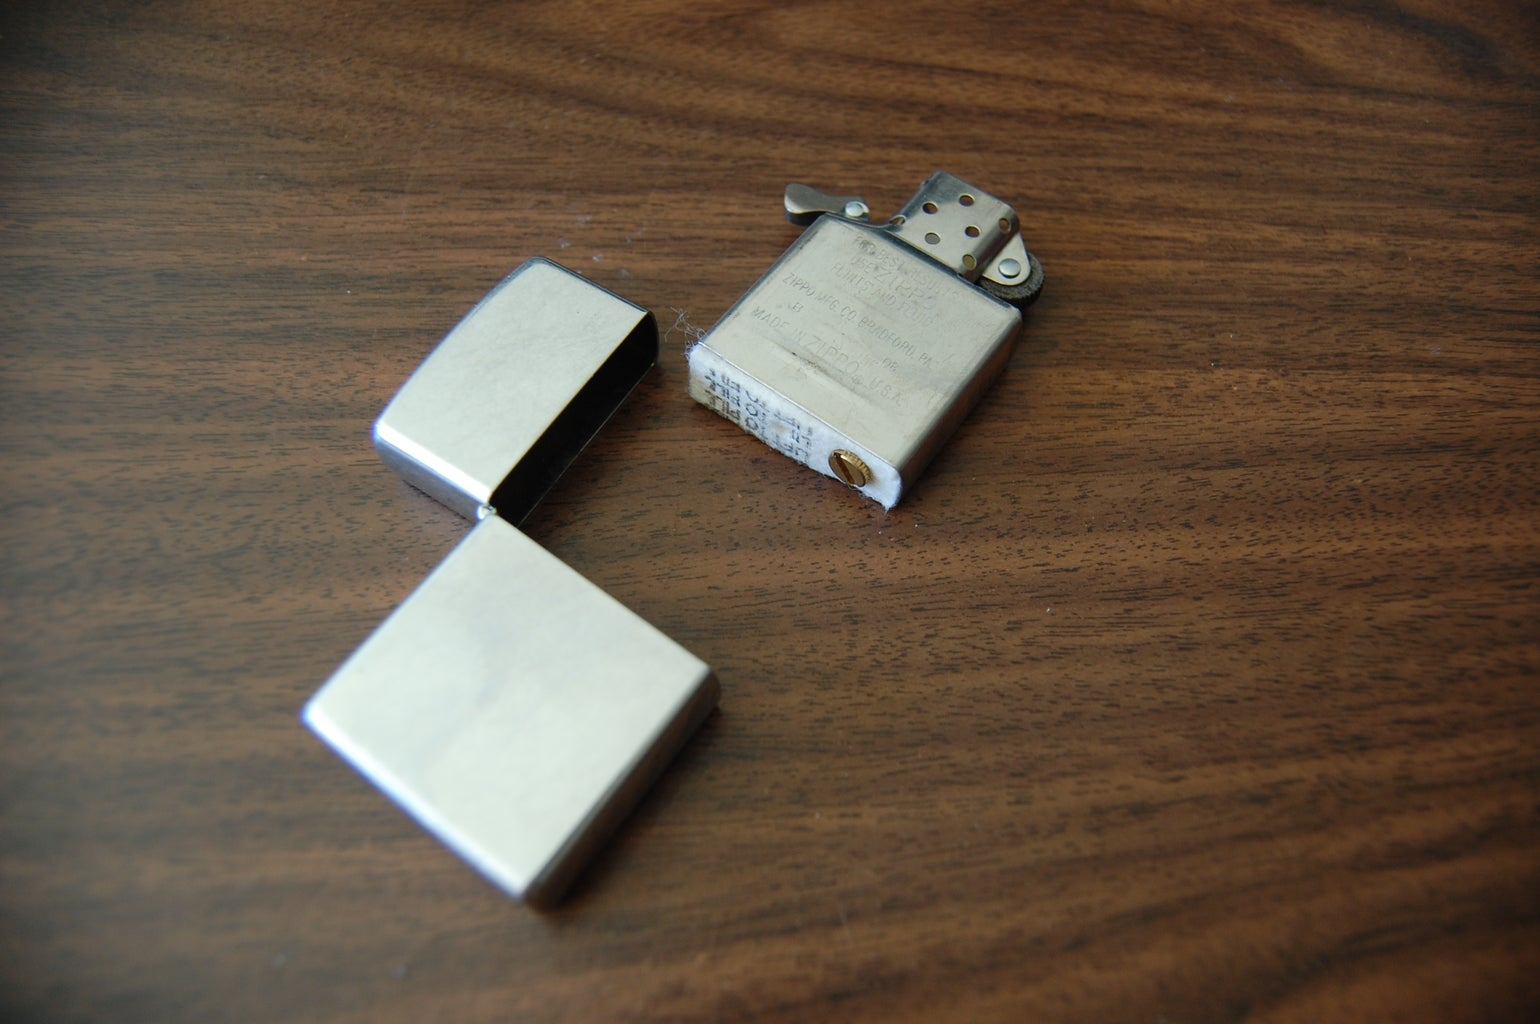 Disassembly and Zippo Modification